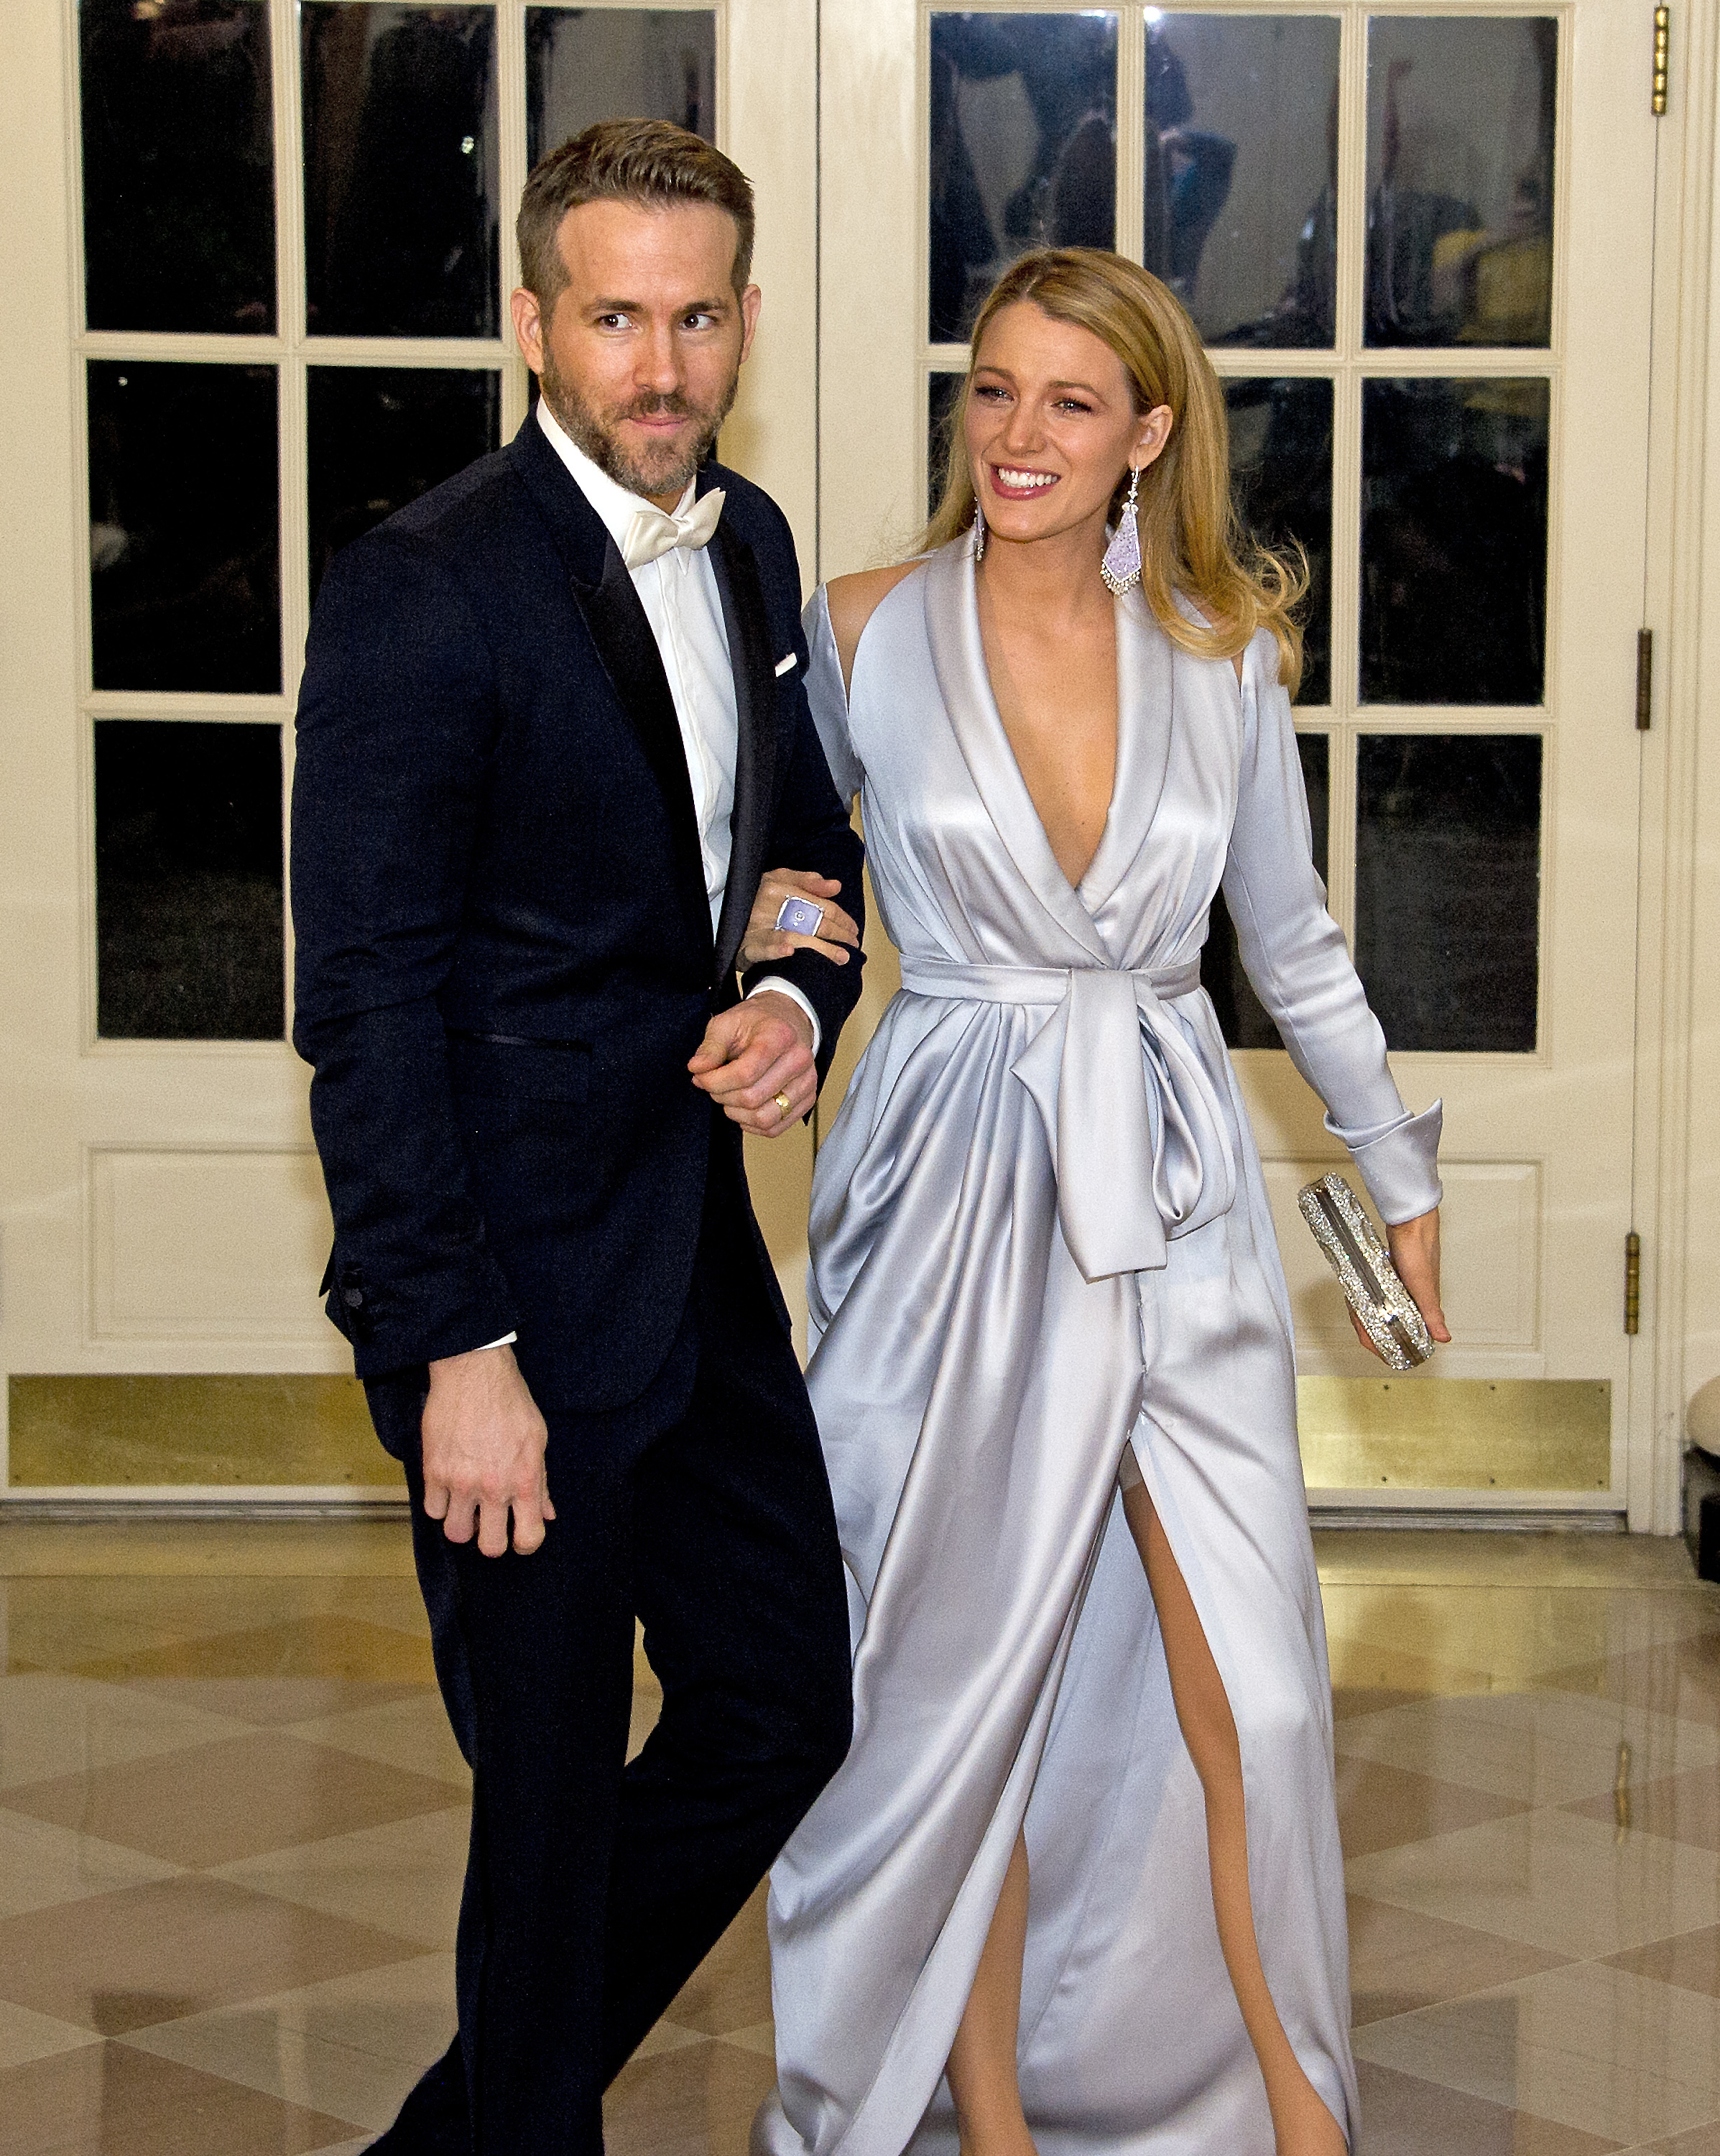 Ryan Reynolds: We settled on the right name for Baby No. 2